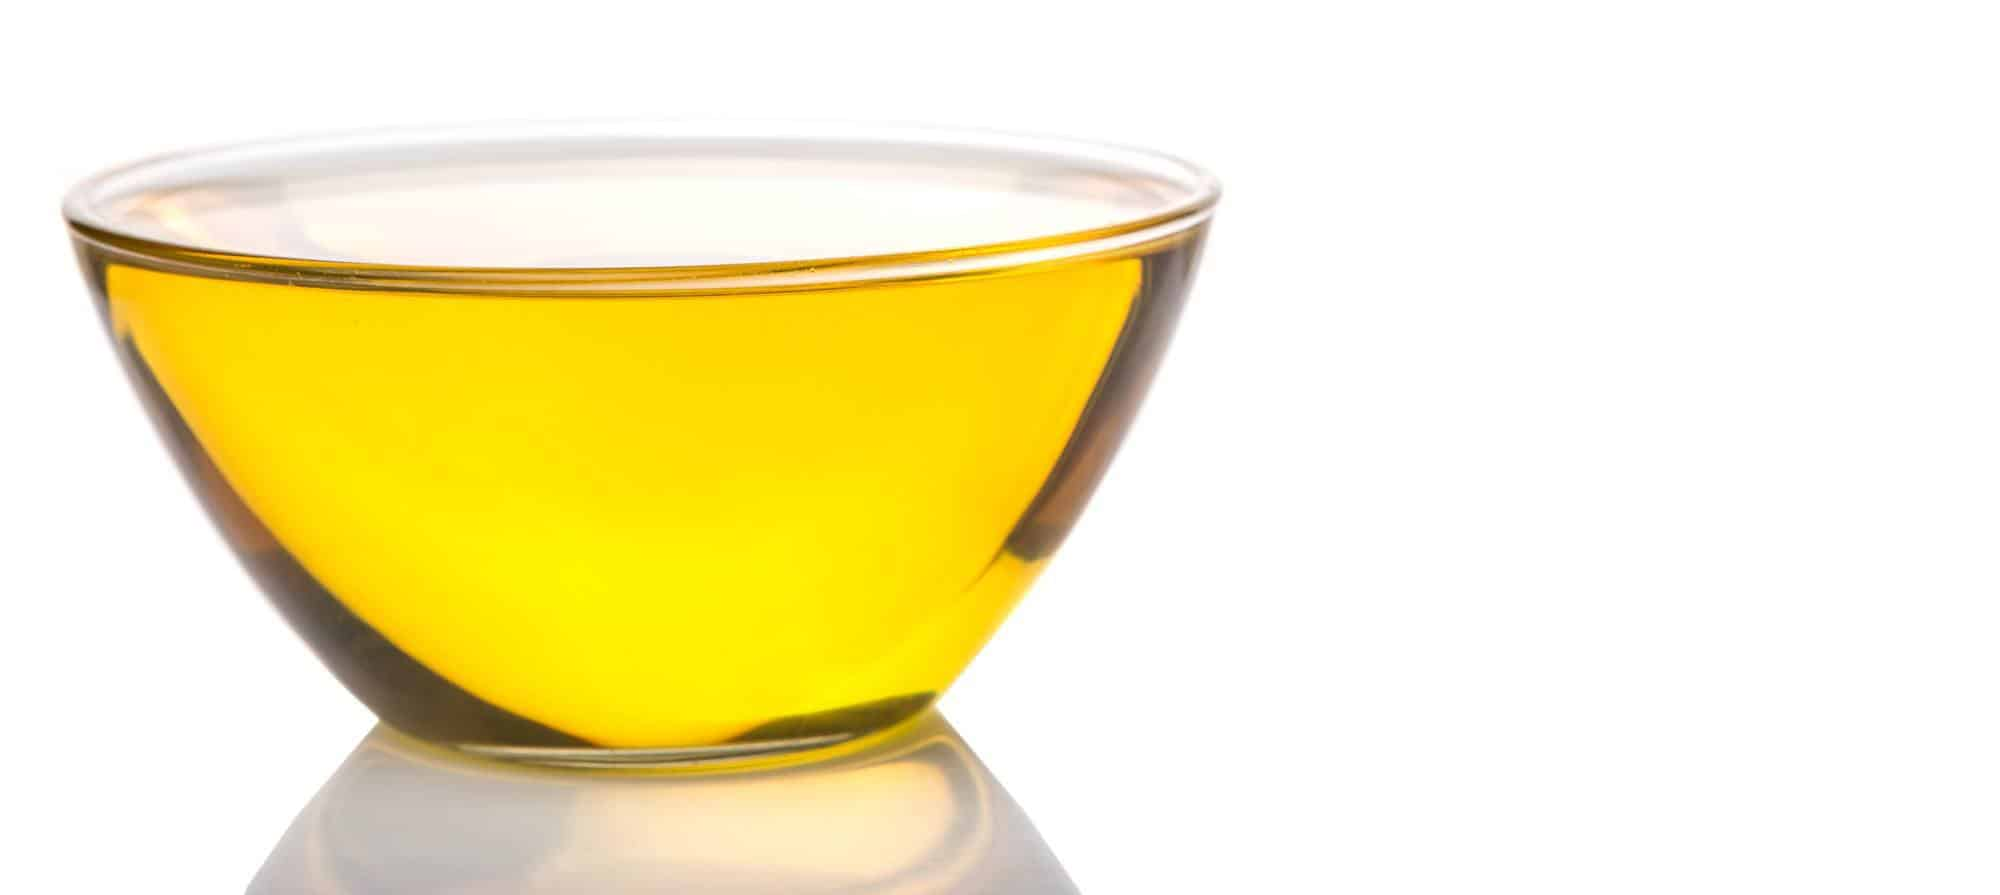 A cup of canola oil.